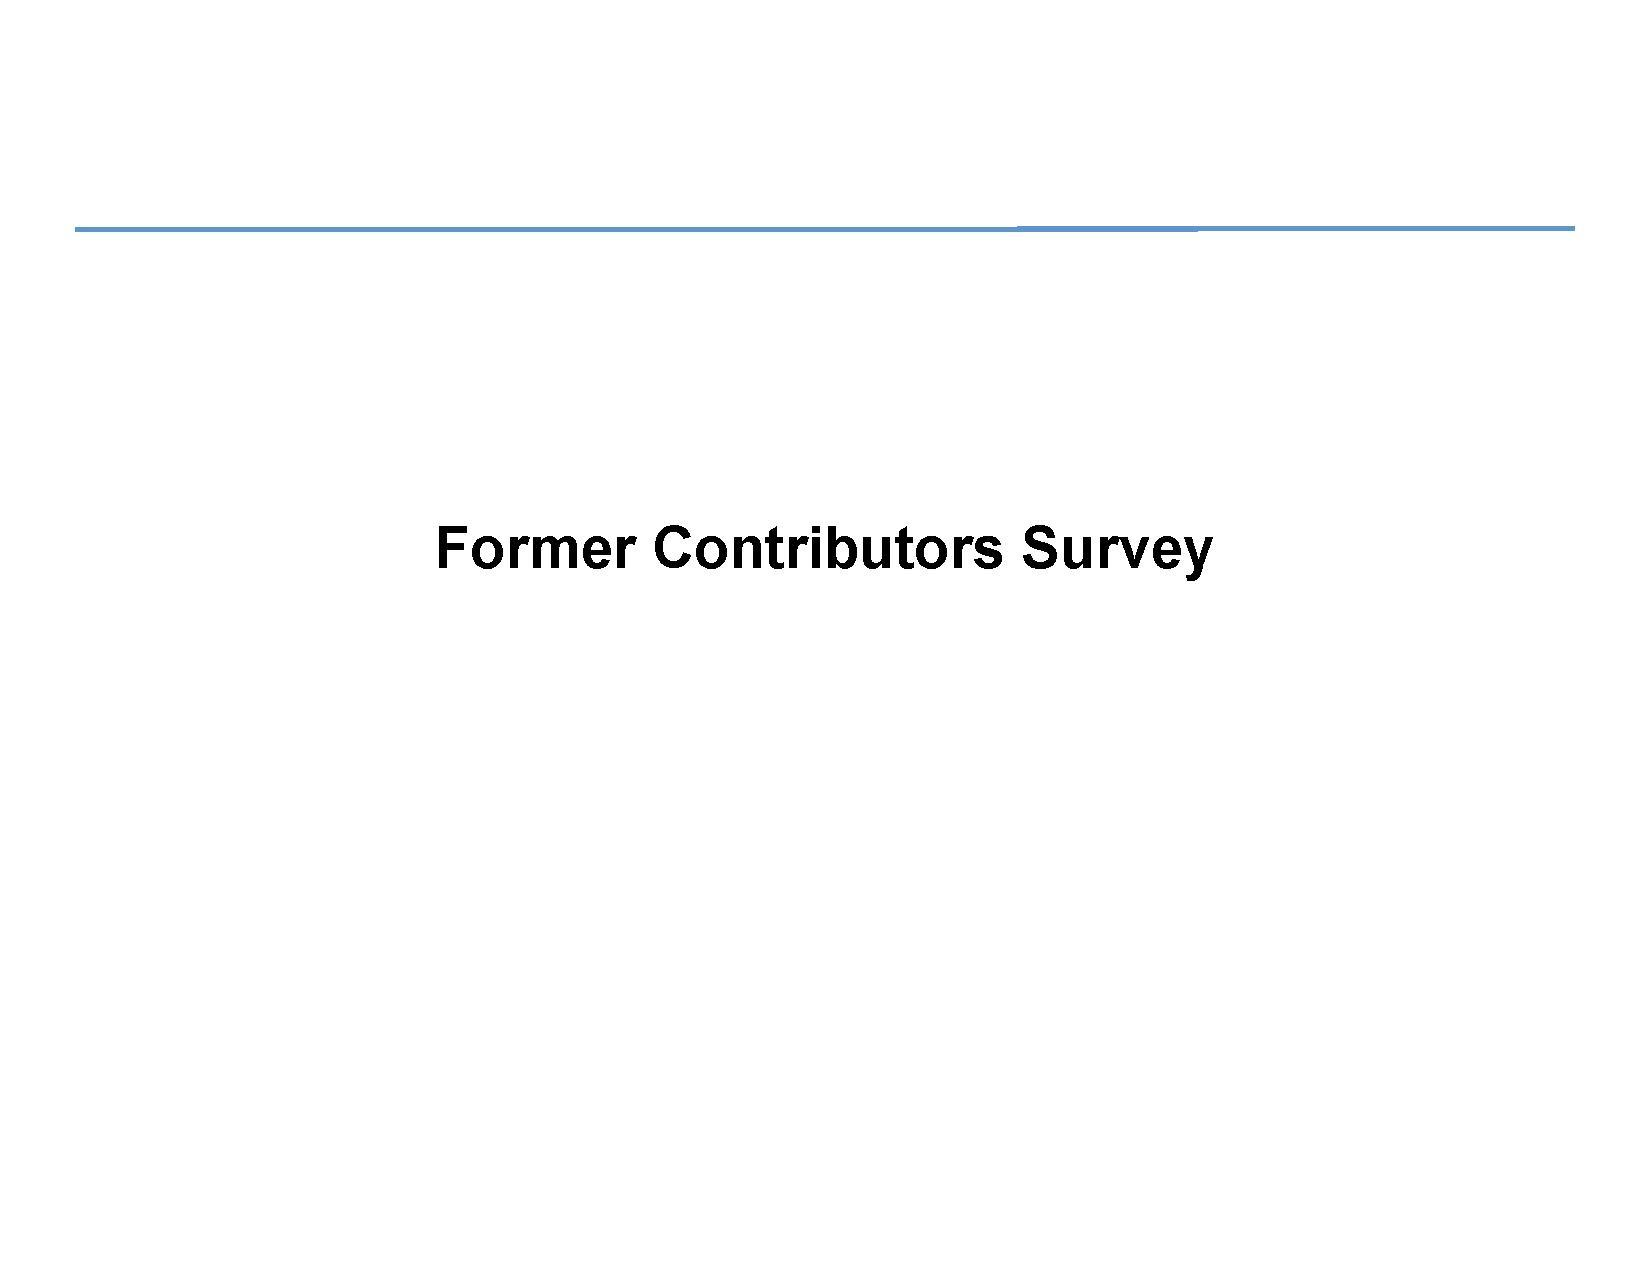 Former contributors survey presentation - wiki.pdf